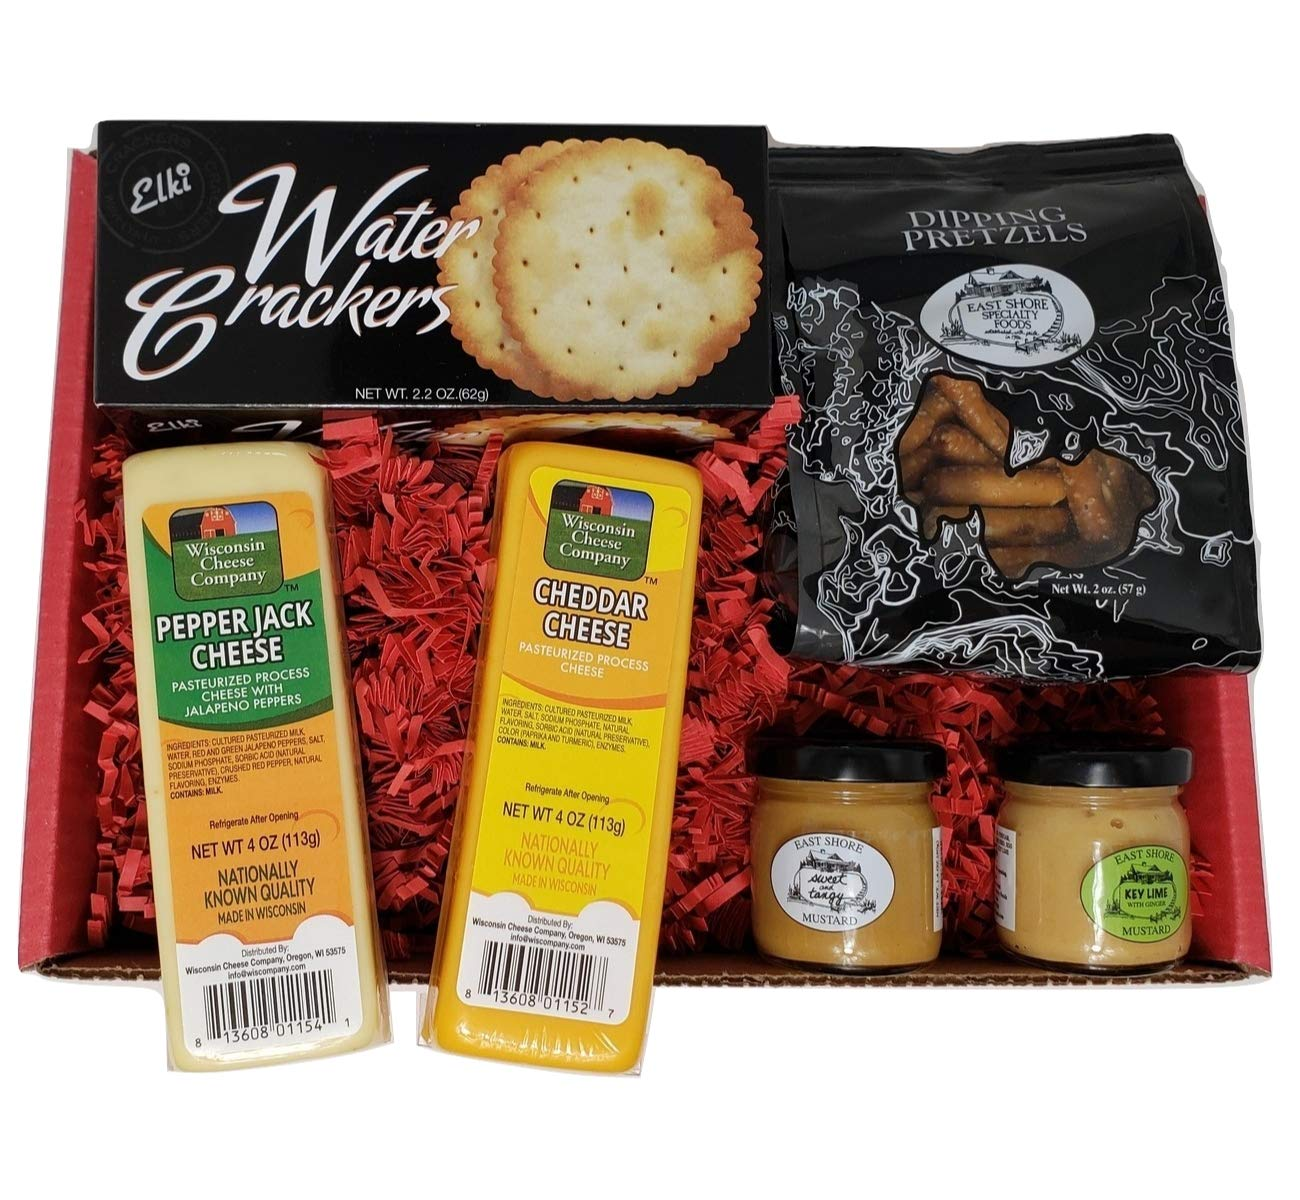 Specialty Gourmet Snack Gift Basket - features 100% Wisconsin Cheddar & Pepper Jack Cheeses, Crackers, Pretzels & Mustard. A Perfect Birthday, Special Occasion Gift Basket. Gourmet Snack Food Gift.